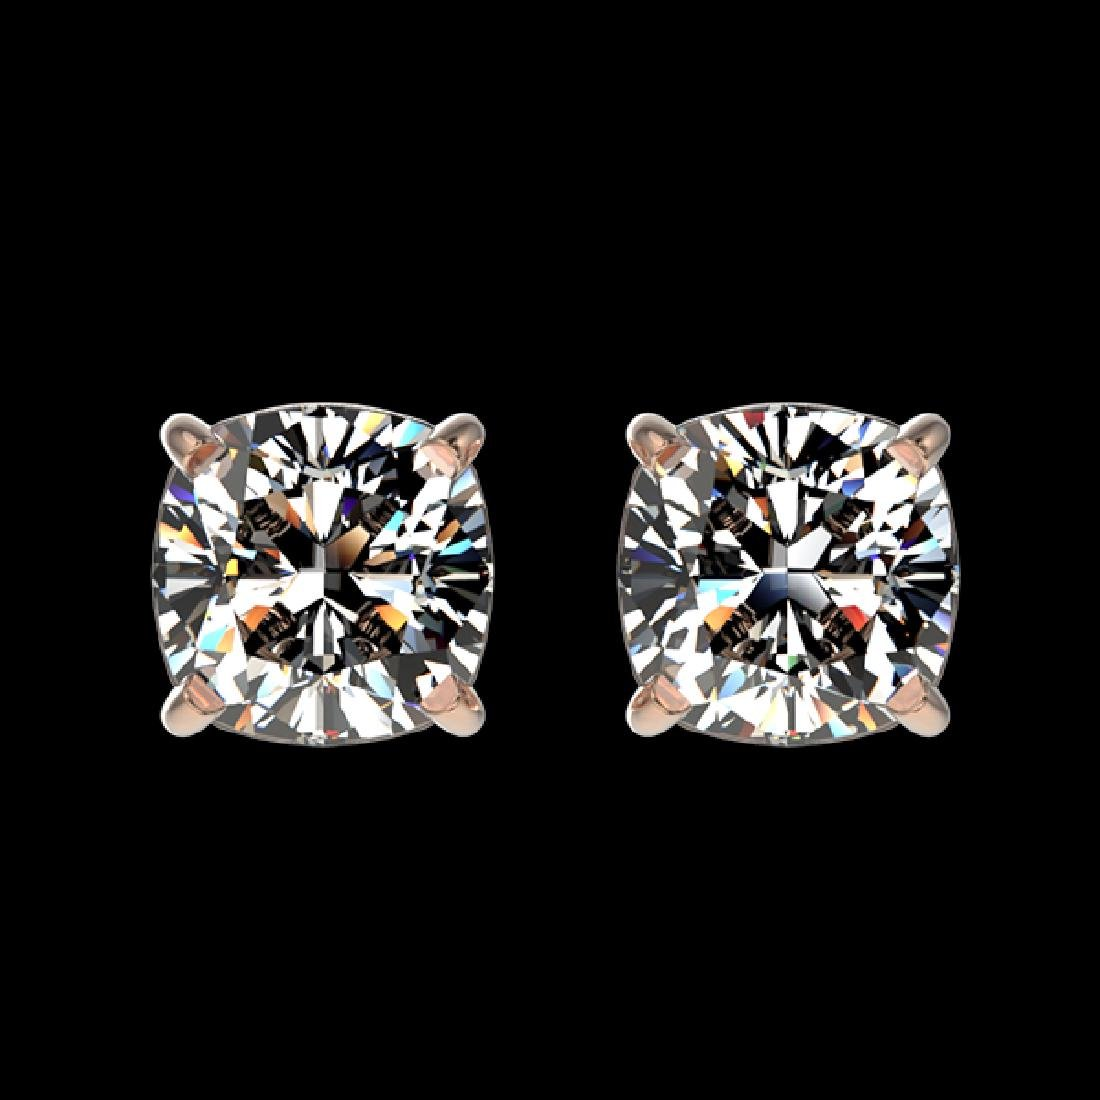 1 CTW Certified VS/SI Quality Cushion Cut Diamond Stud